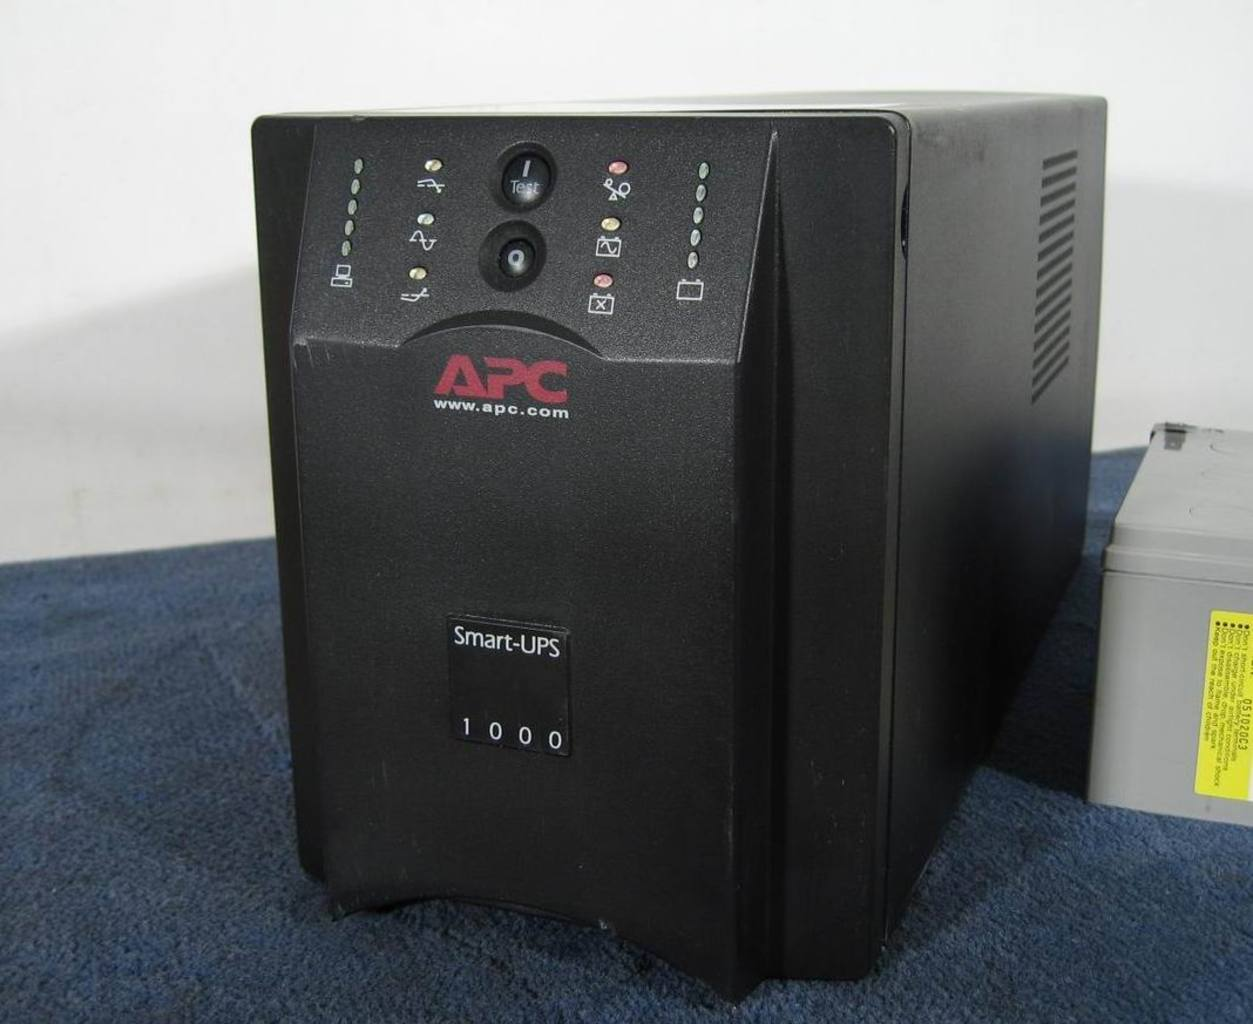 Details about APC 1000 UPS - SUA1000i - new cells - 12 month Wtee